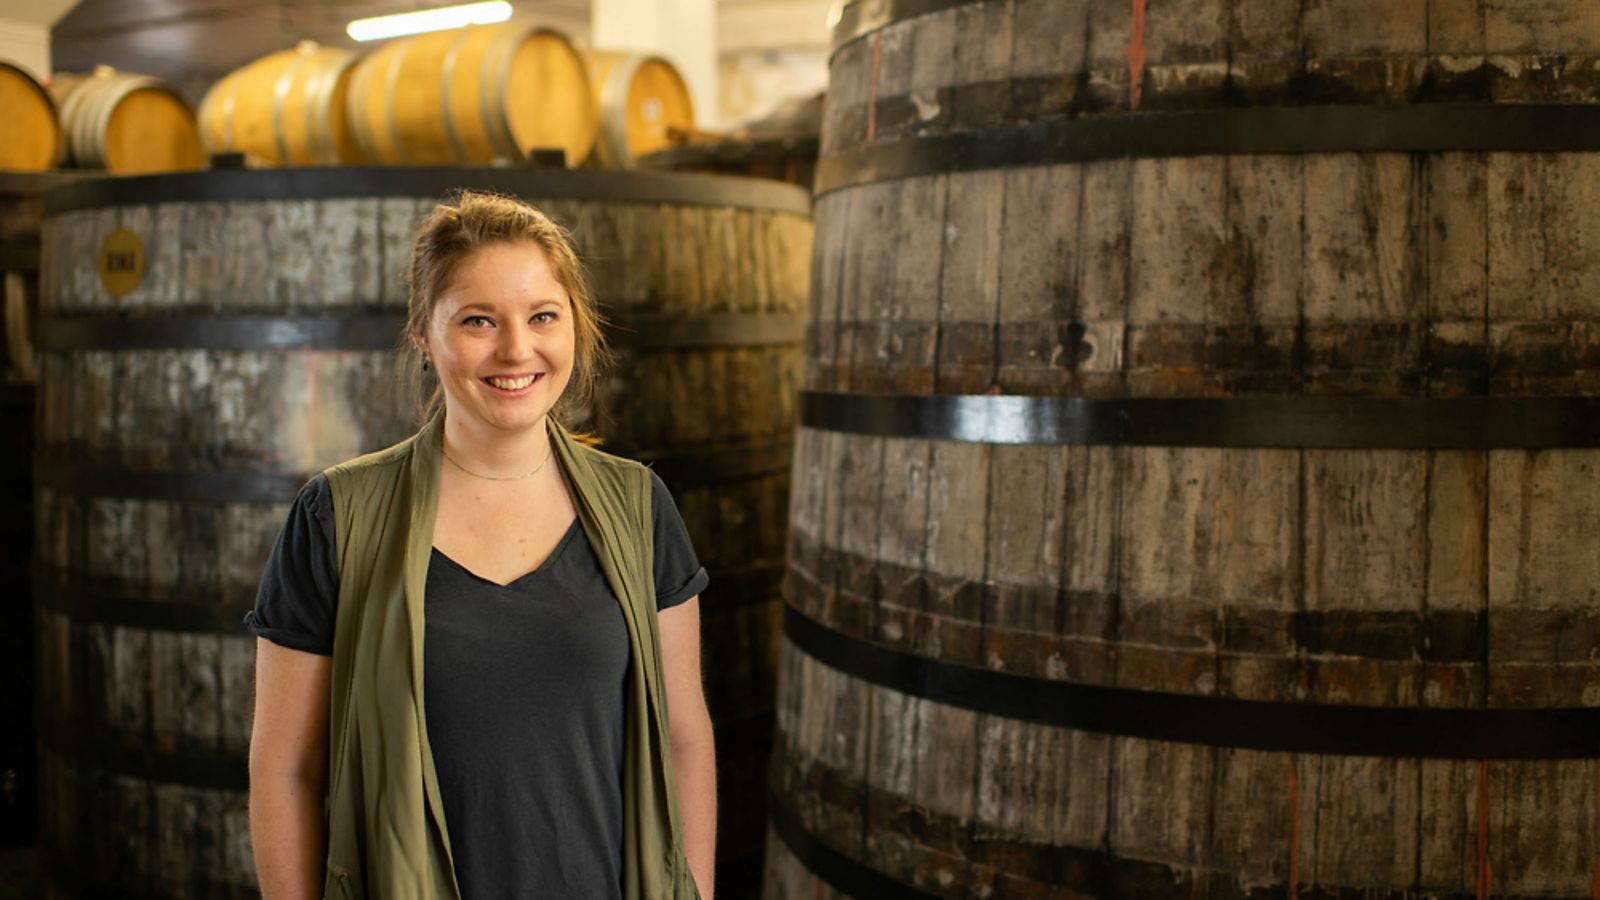 Alyssa, wearing a black top and green sleeveless cardigan, stands in front of large wooden barrels.